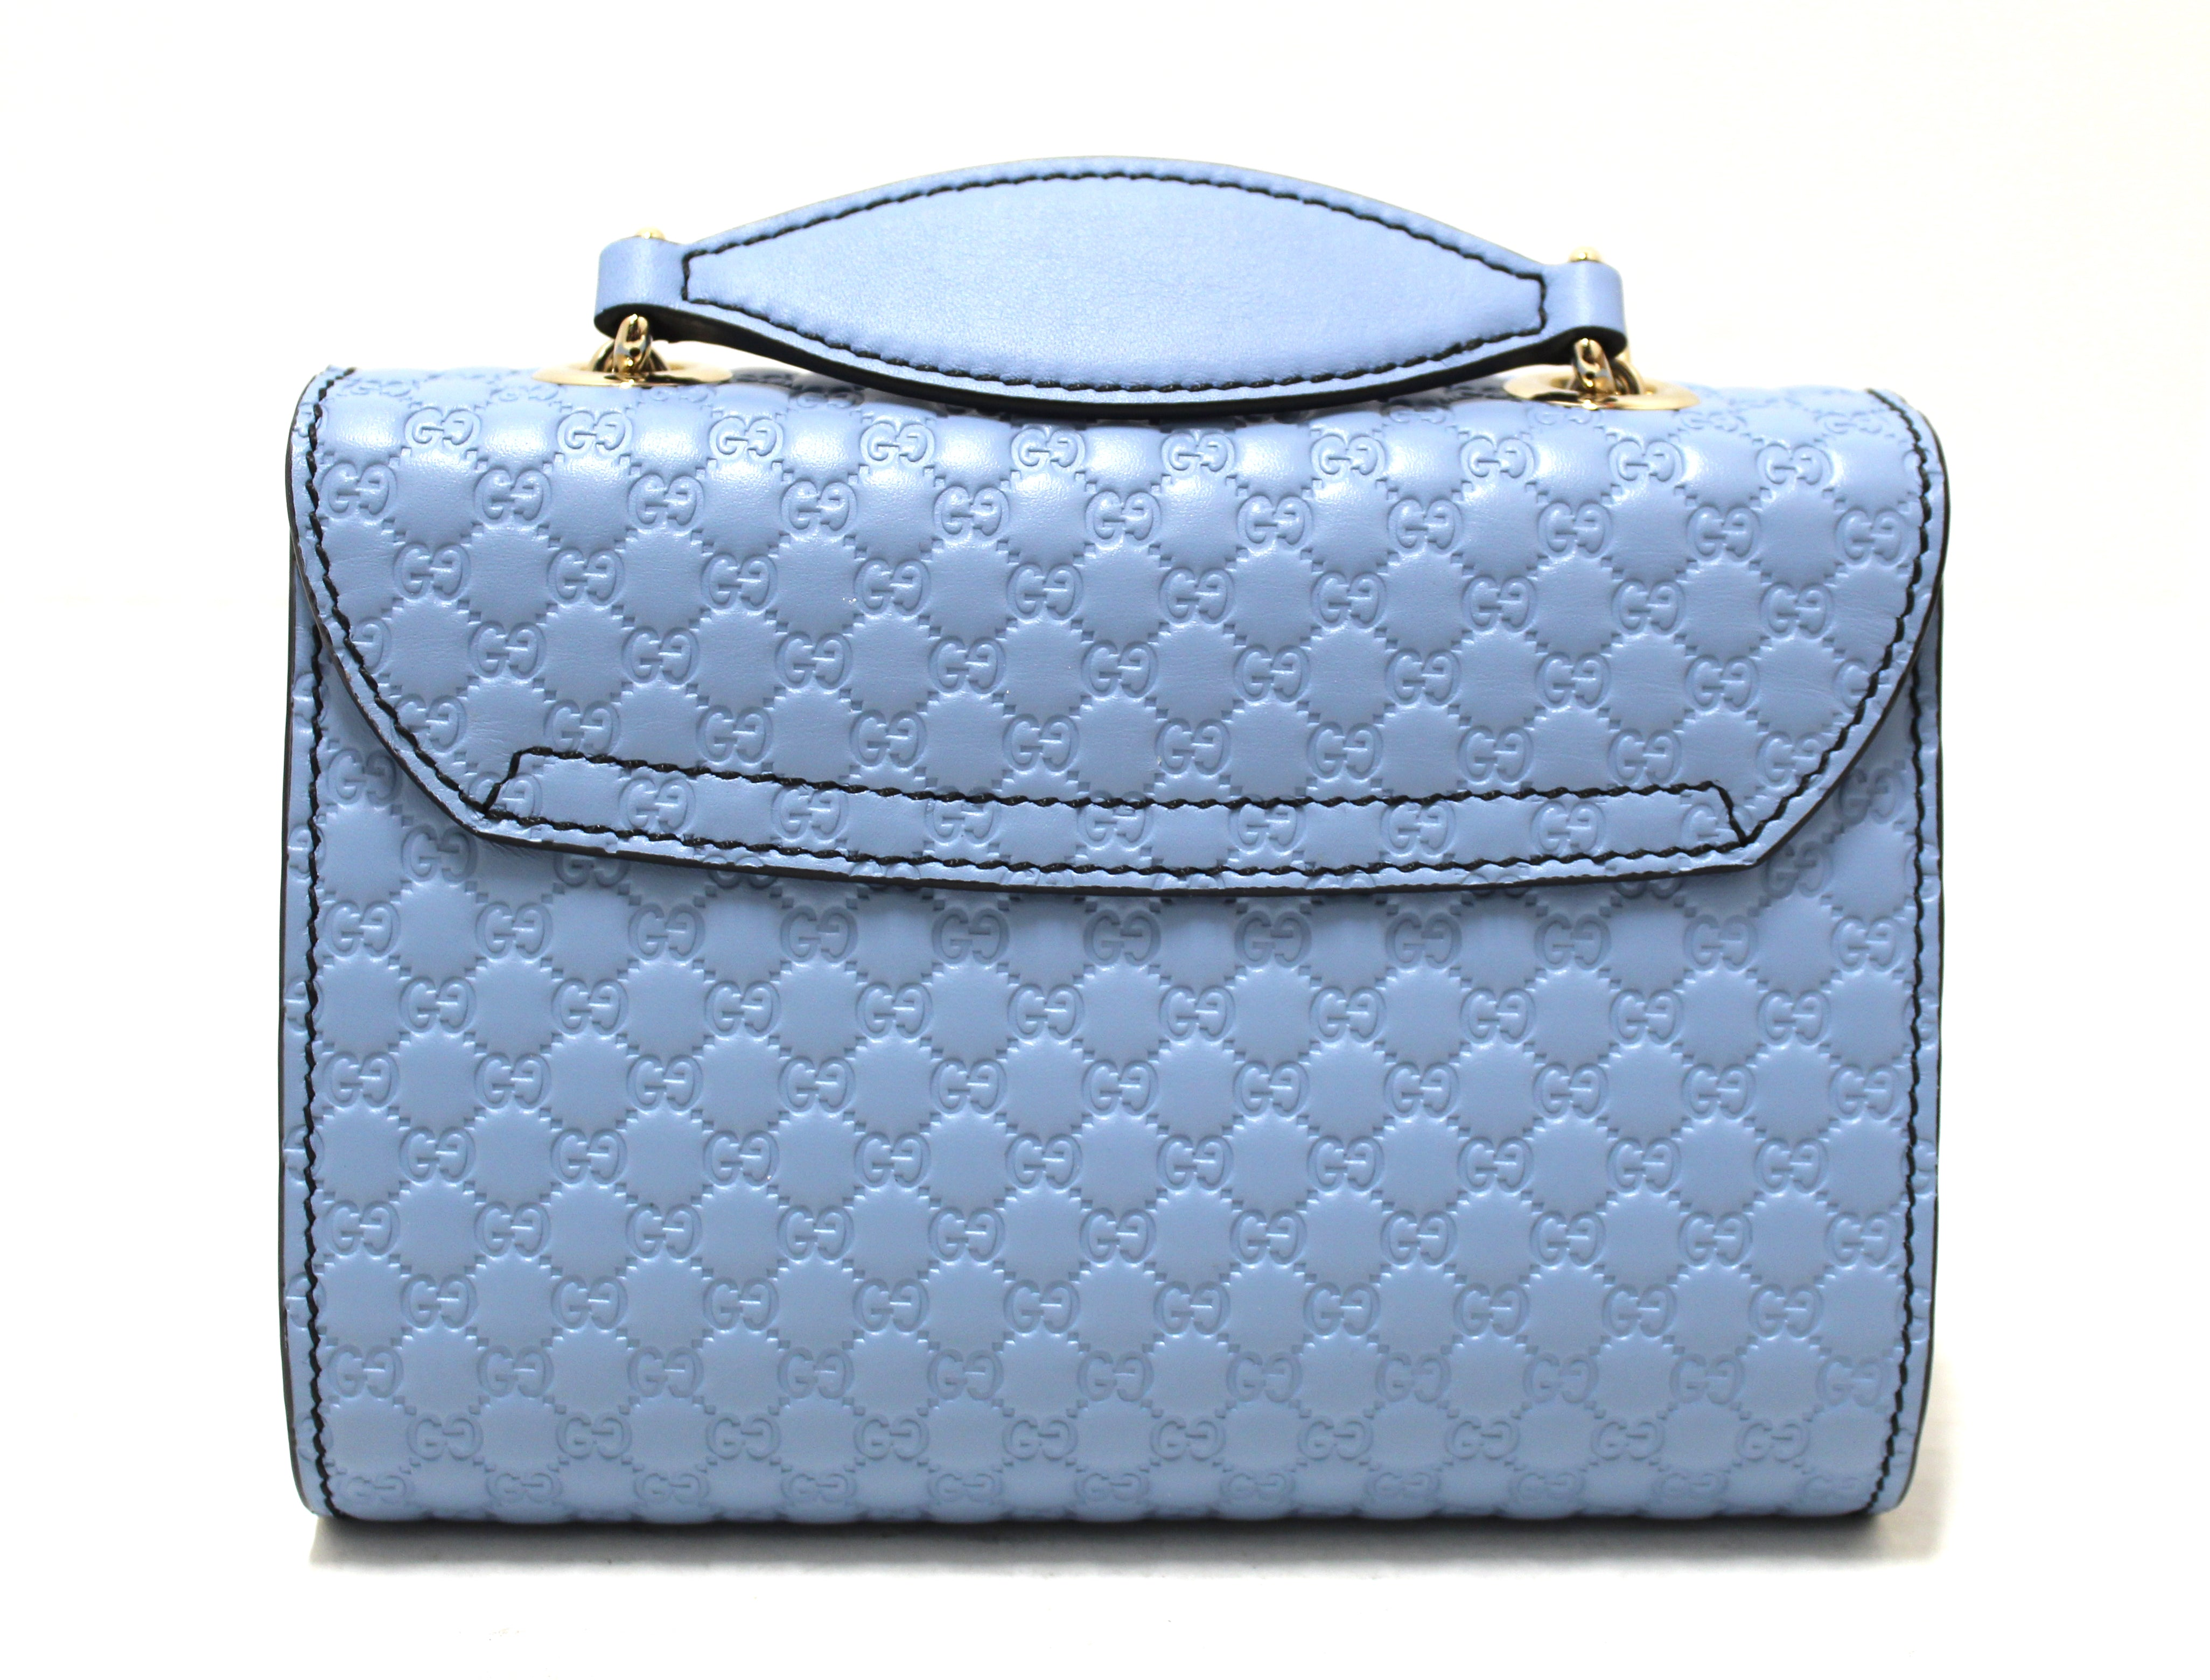 Authentic New Gucci Baby Blue Micro Guccissima Leather Mini Emily Messenger Bag 449636